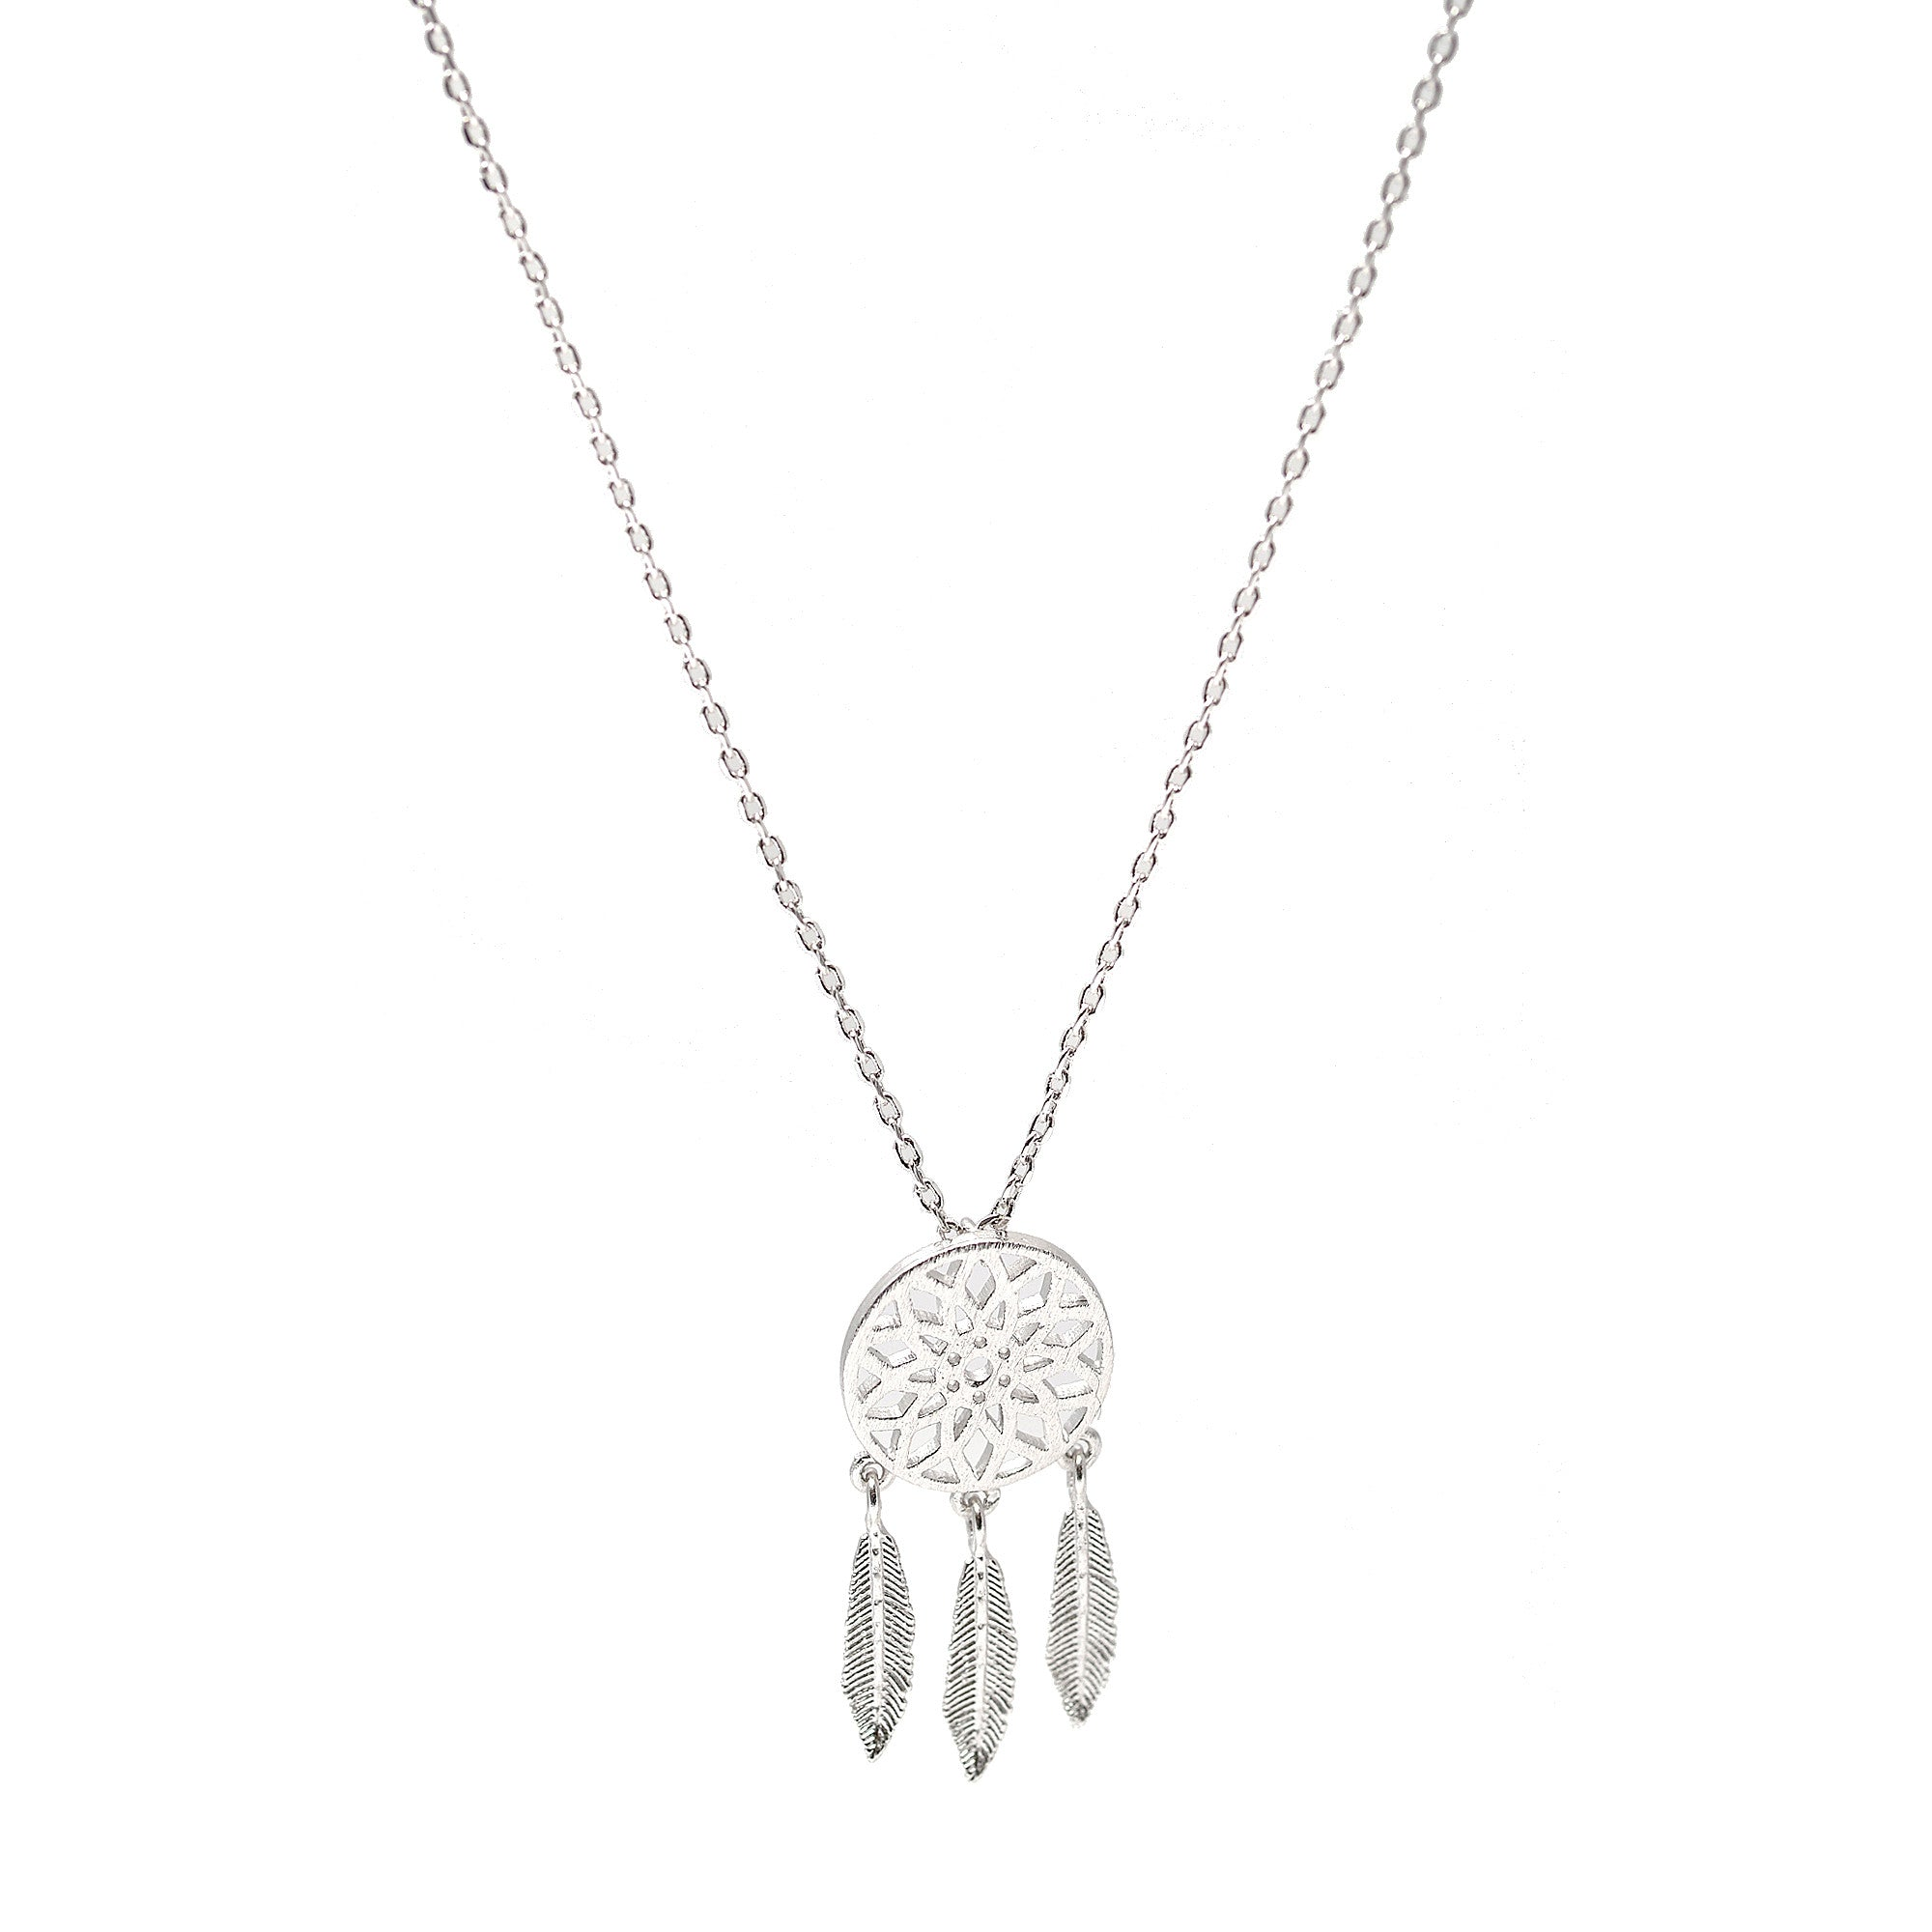 zoom thomas sabo dreamcatcher necklace women imitation silver dream catcher ethno sterling turquoise